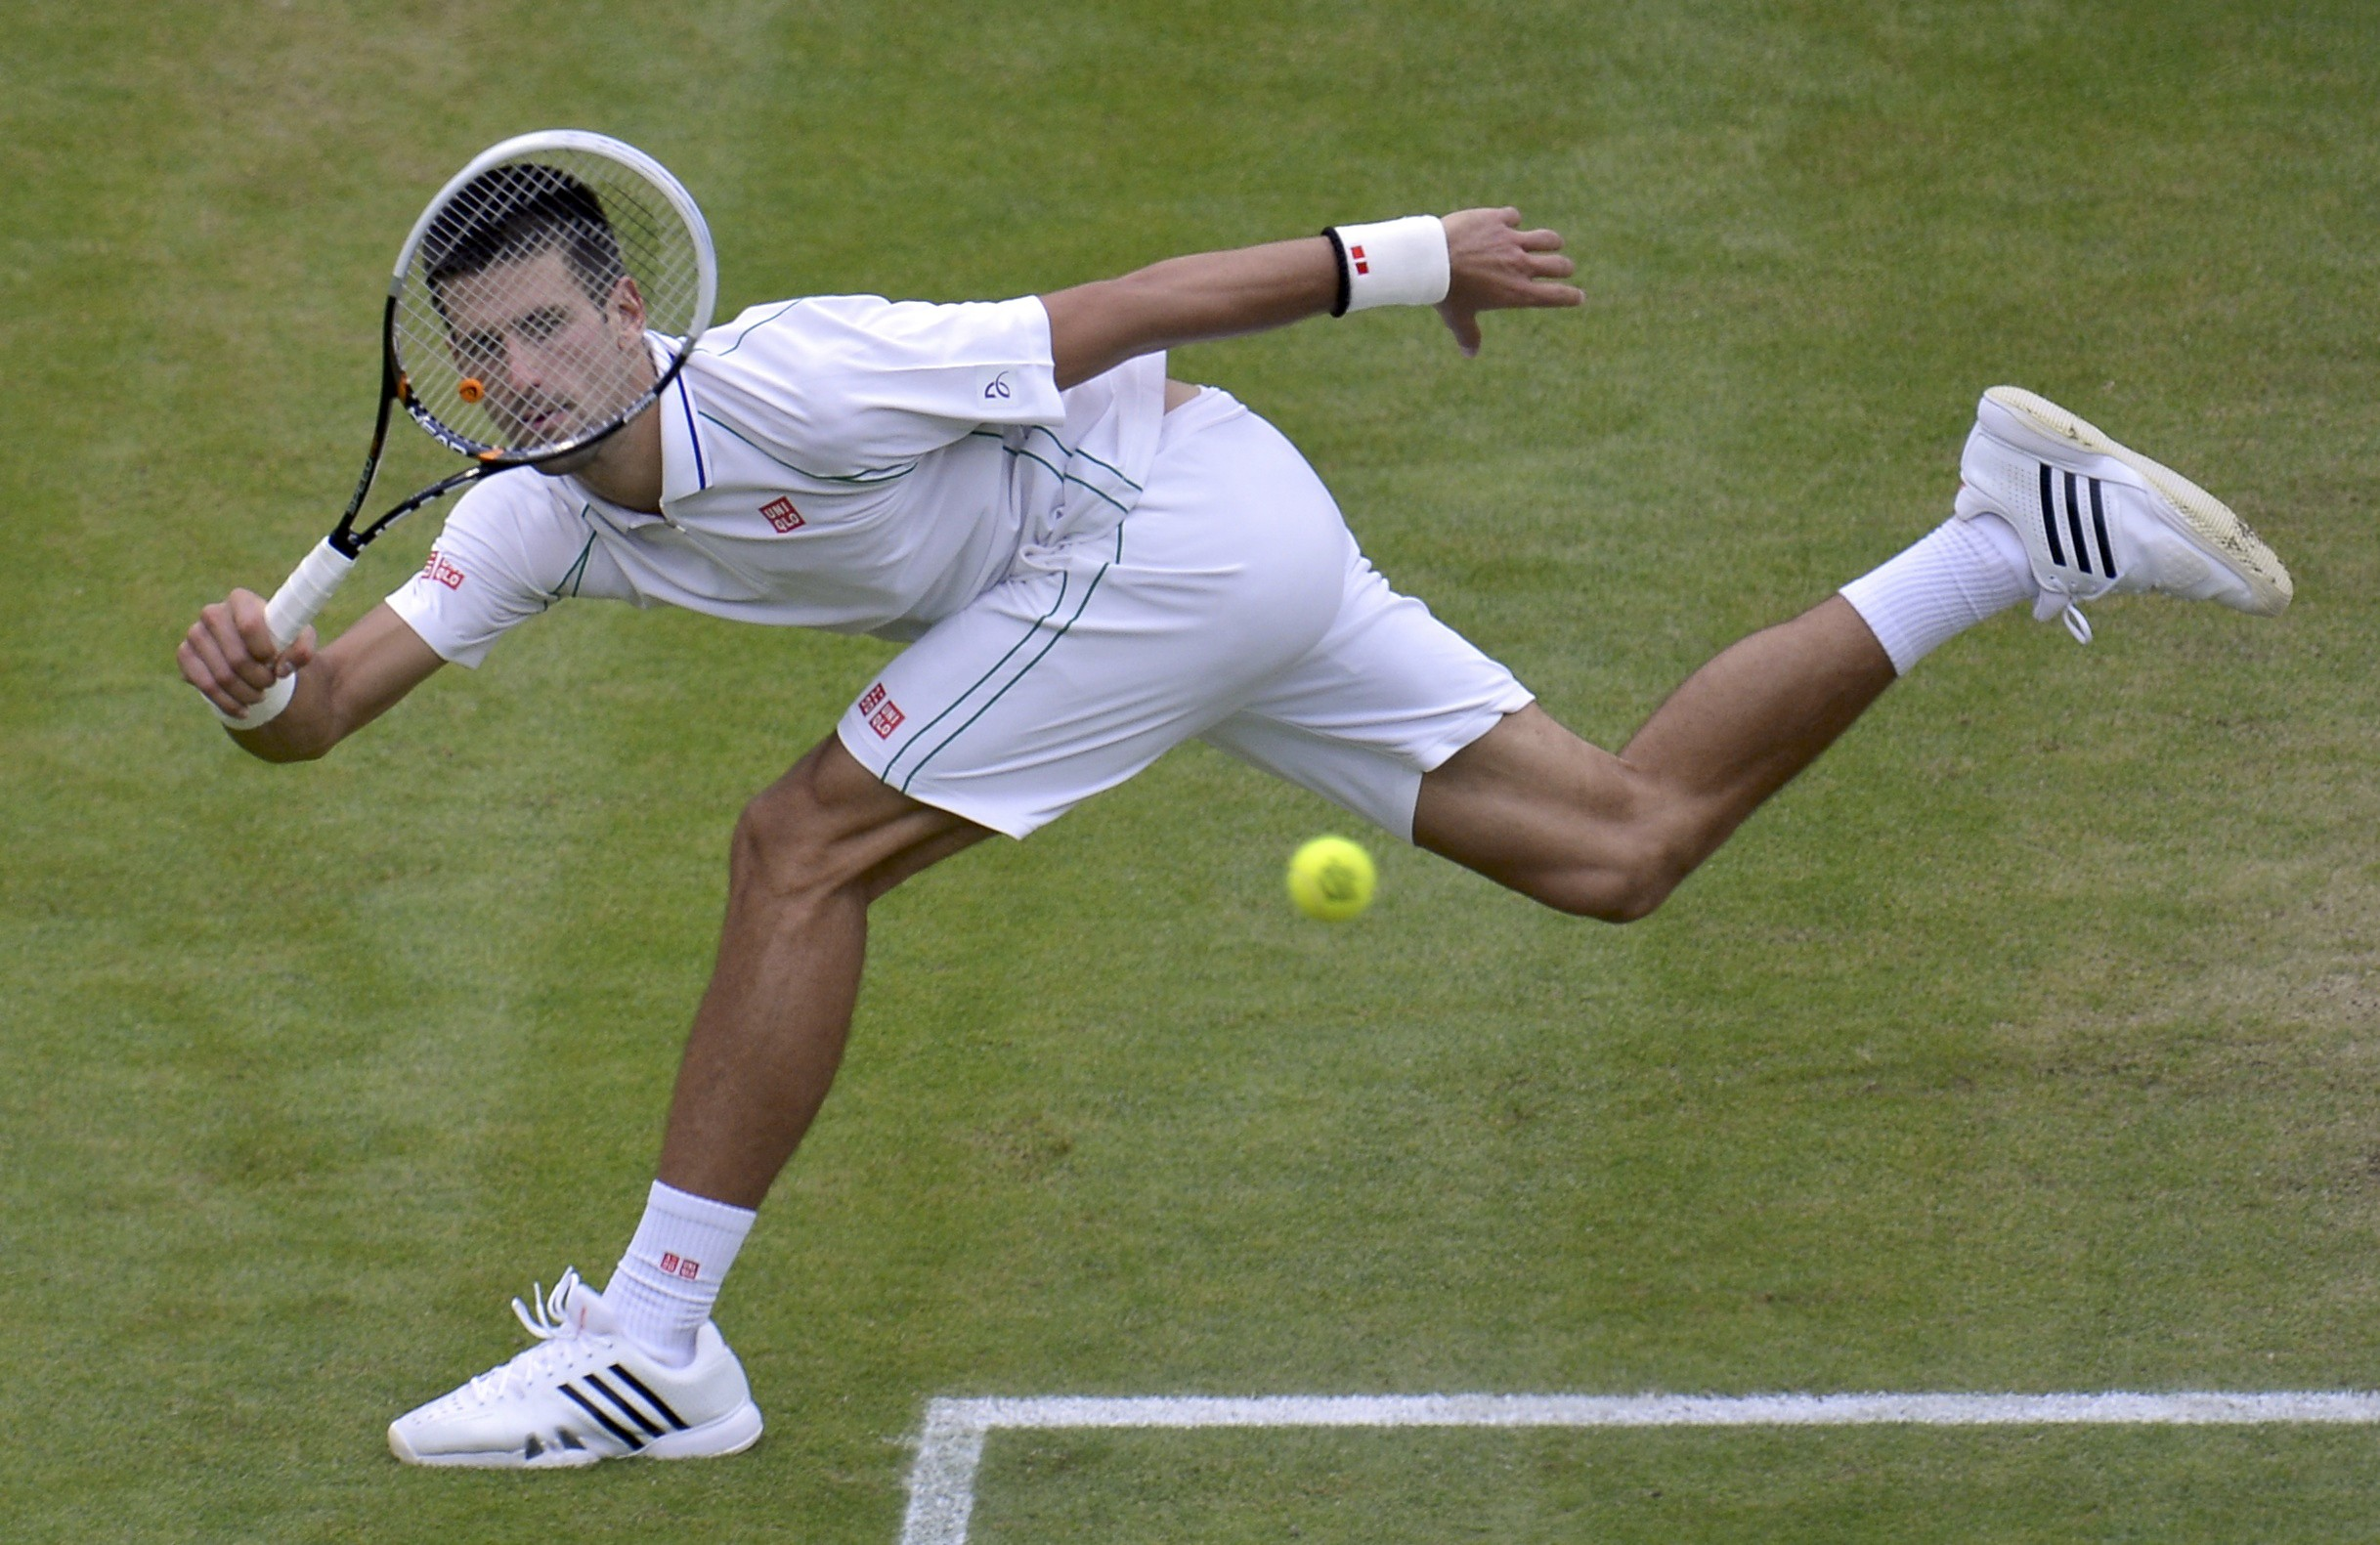 Tennis: On-song Djokovic eases into Wimbledon second round